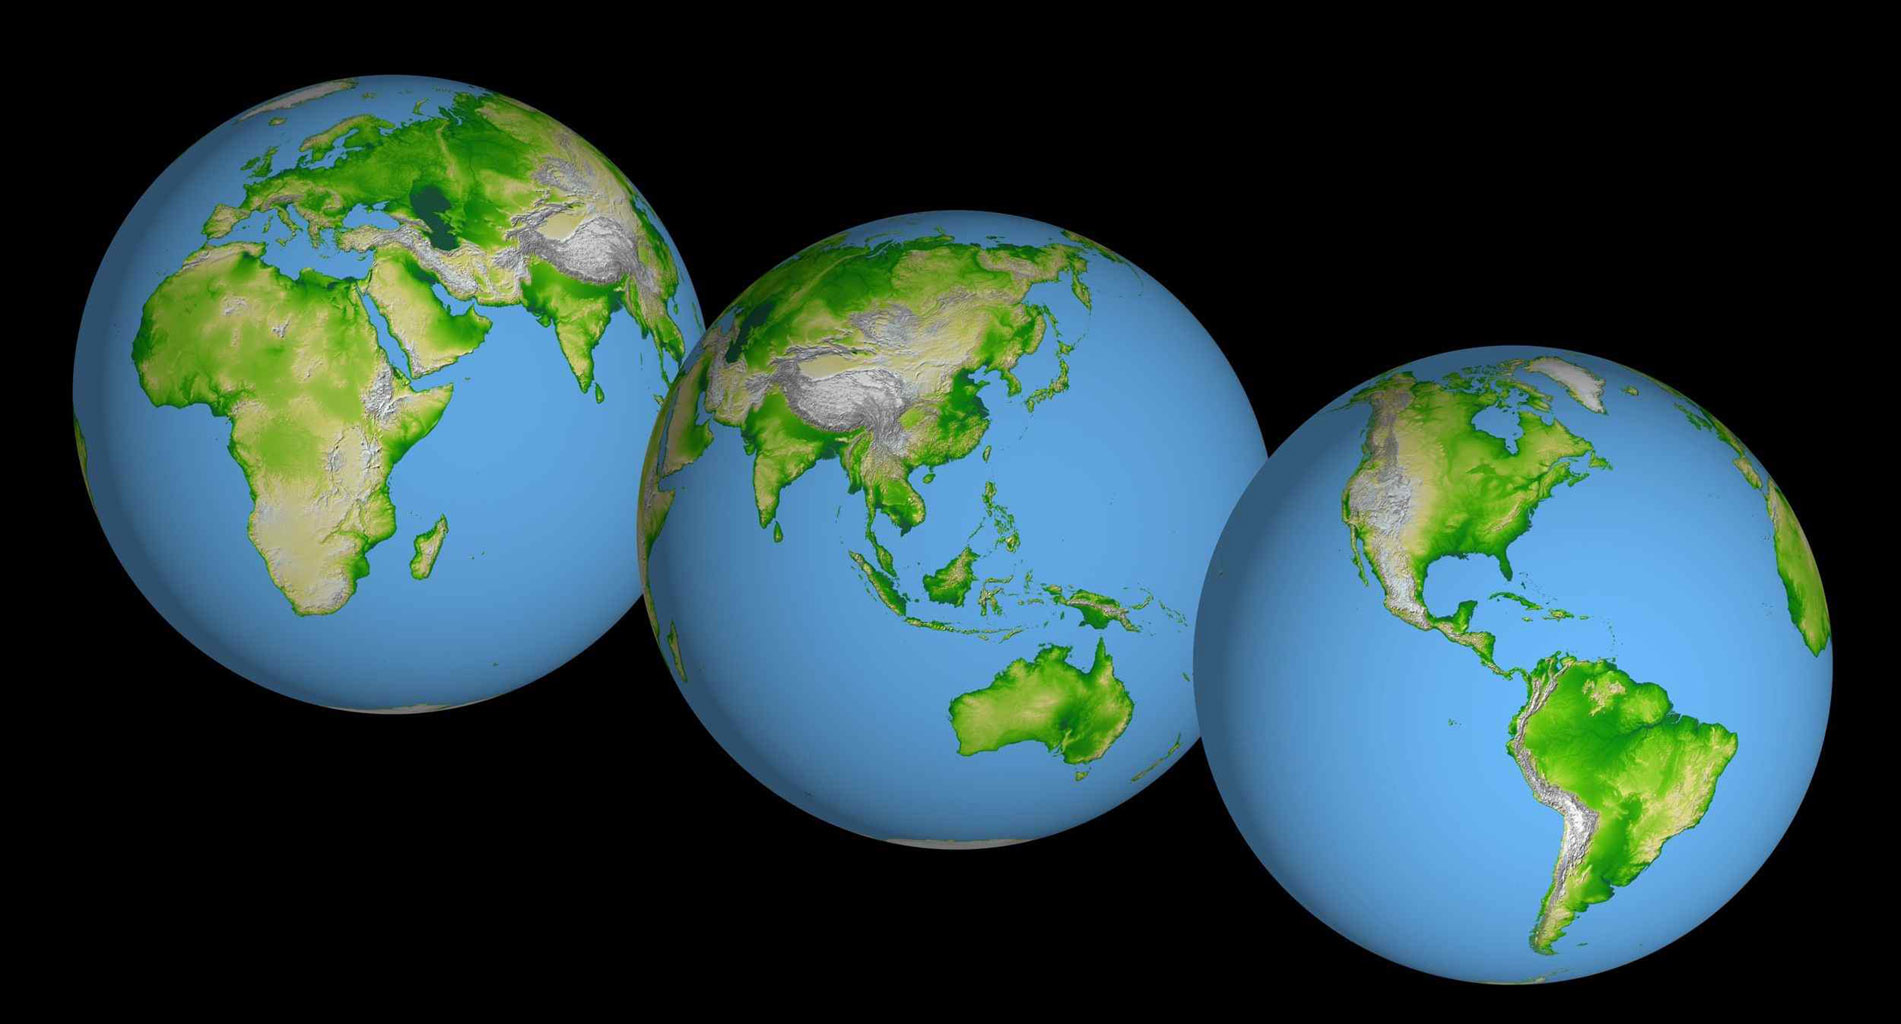 These images of the world were generated with data from the Shuttle Radar Topography Mission (SRTM). Two visualization methods were combined to produce the image: shading and color coding of topographic height.